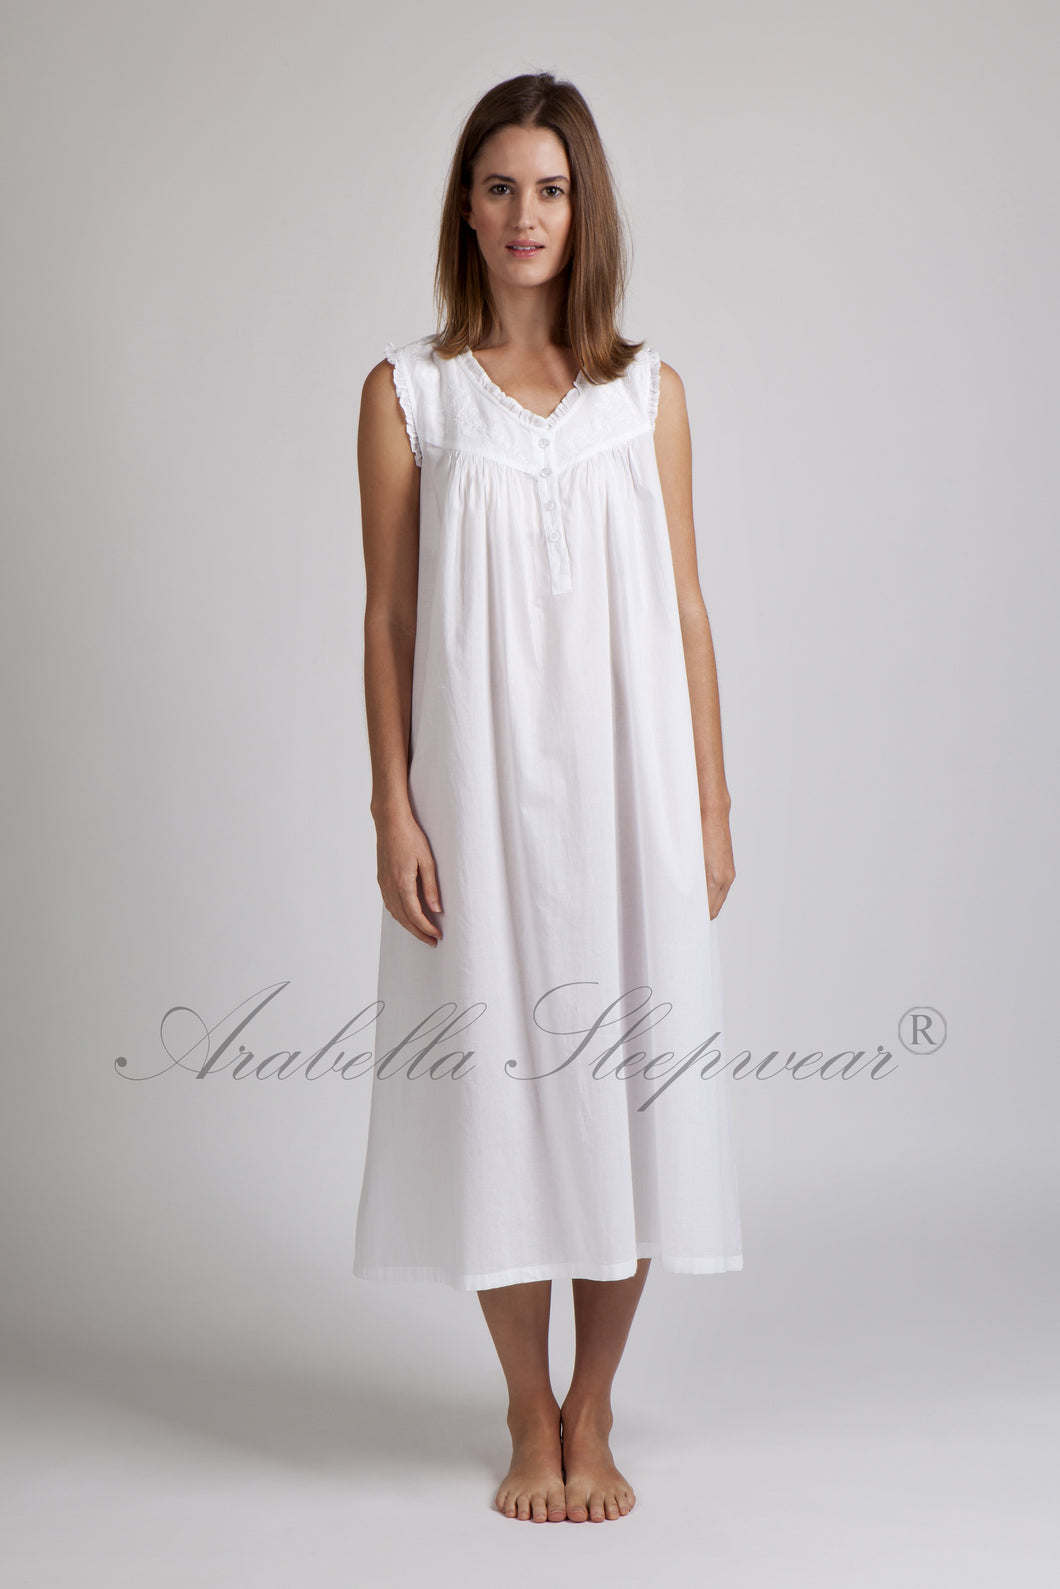 Arabella Nightie White with Lace